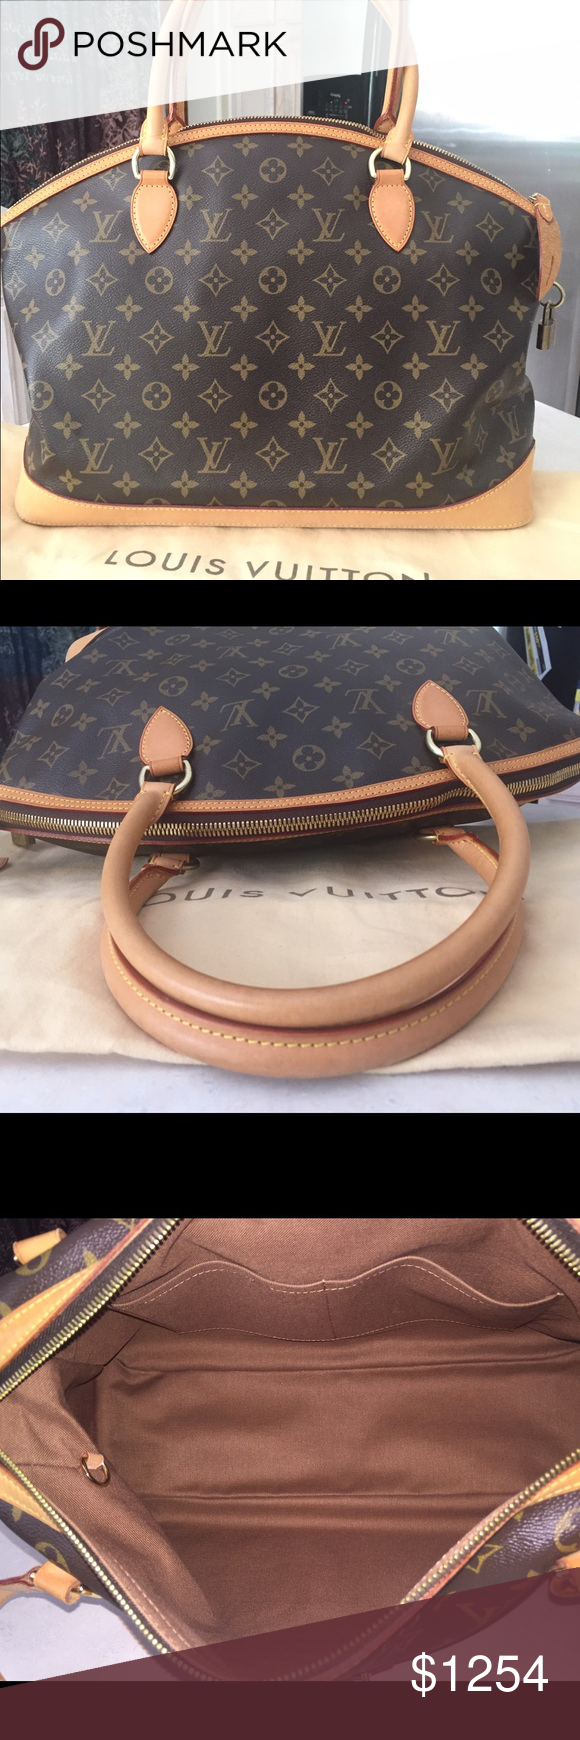 Lockit Louis Vuitton GM Monogram Shoulder Bag Authentic Lockit Louis Vuitton Horizontal Handpurse Monogram GM. Datecode AR0056 Manufactured in France Month of May Year 2006. The interior is clean and smells clean besides leather or vachetta smell. The exterior in great condition light patina and sturdy bronze/gold plated hardware. It has water marks on the bottom of bag besides that the bag perfect condition. It comes with Dust bag  key is missing for padlock but it's manageable. This Bag…